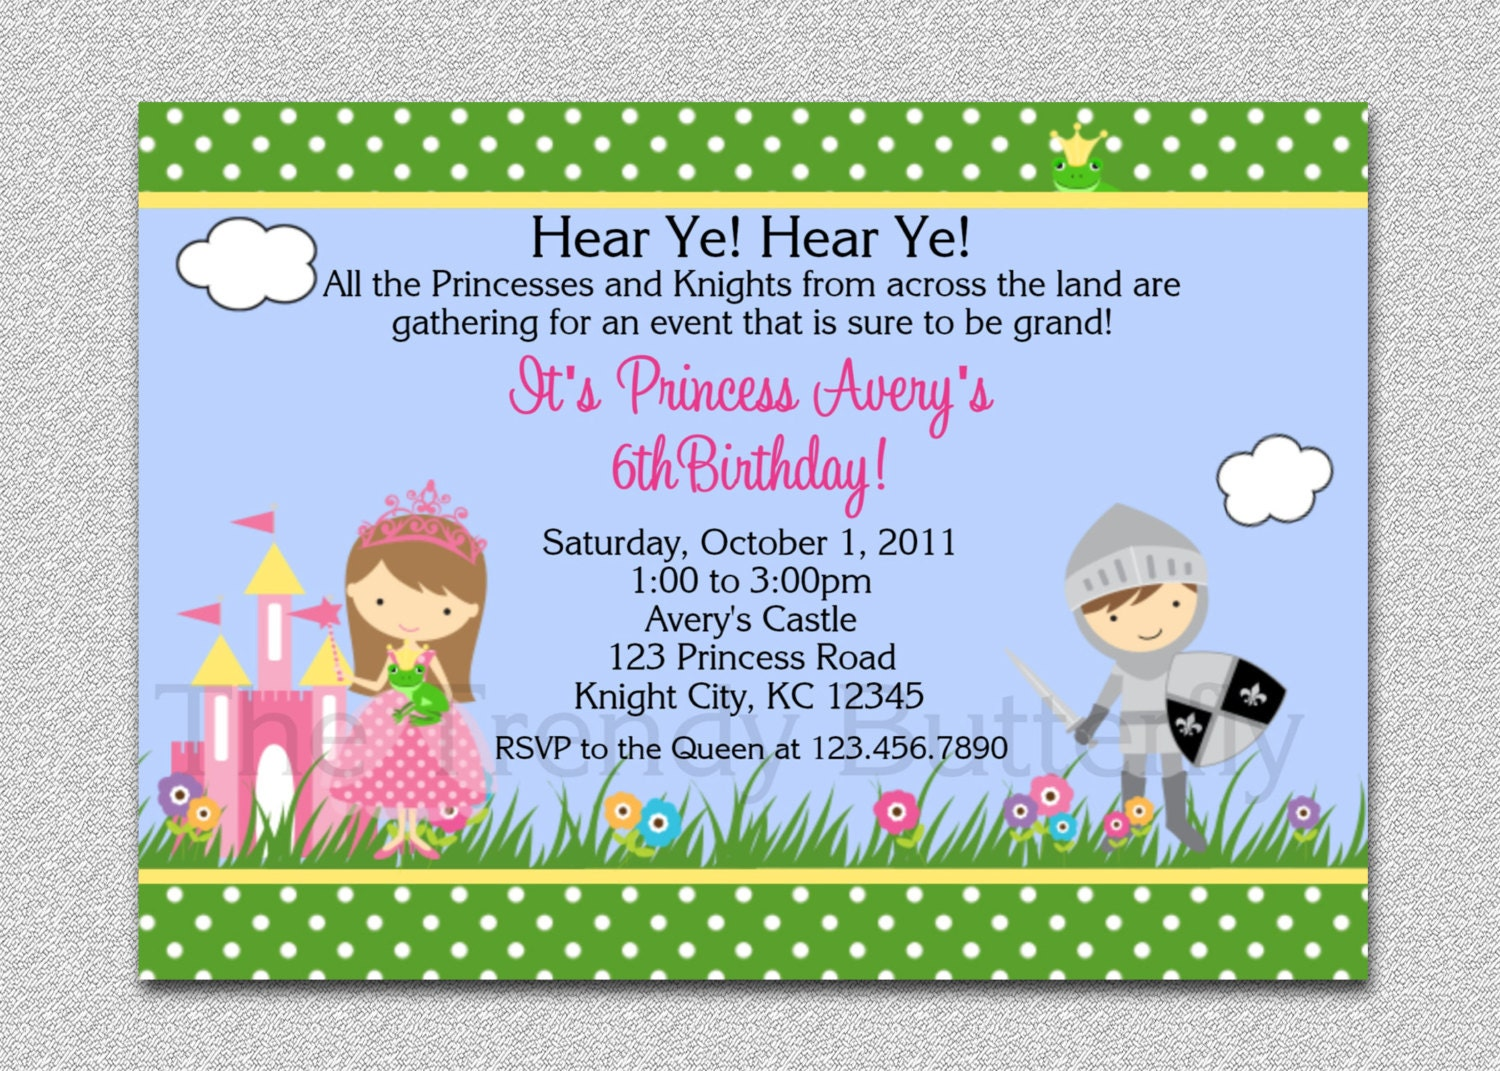 Princess Knight Party Invitation Princess Knight Birthday